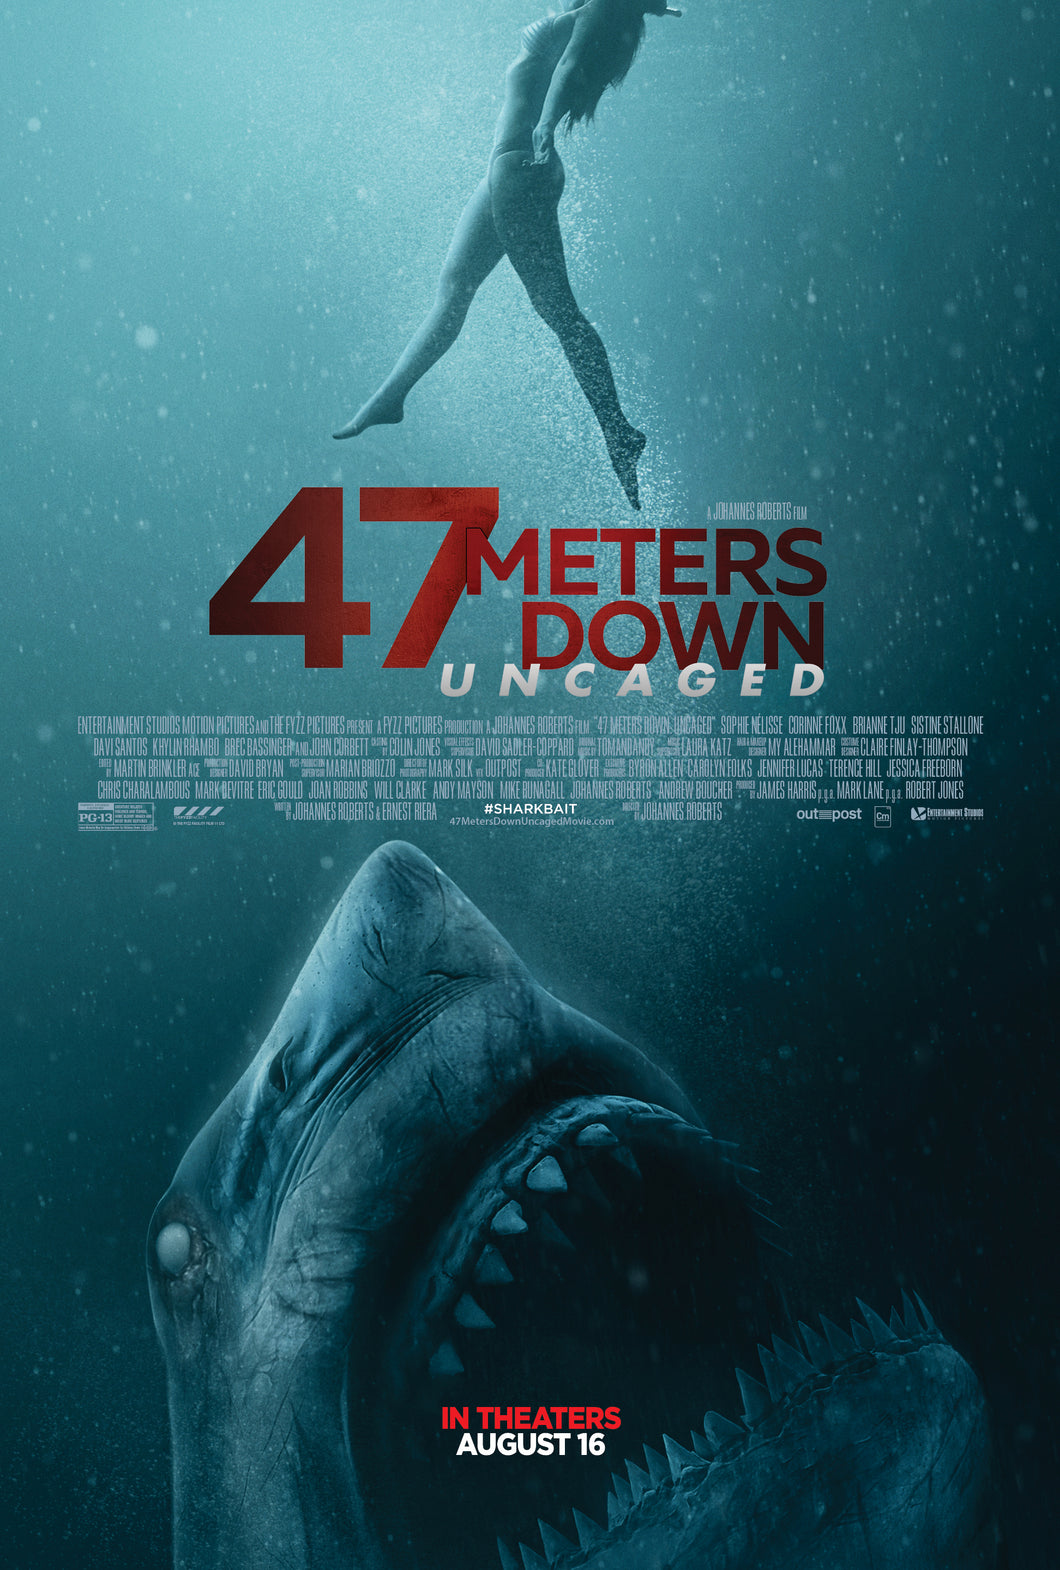 47 meters down uncaged Blu-ray  Media